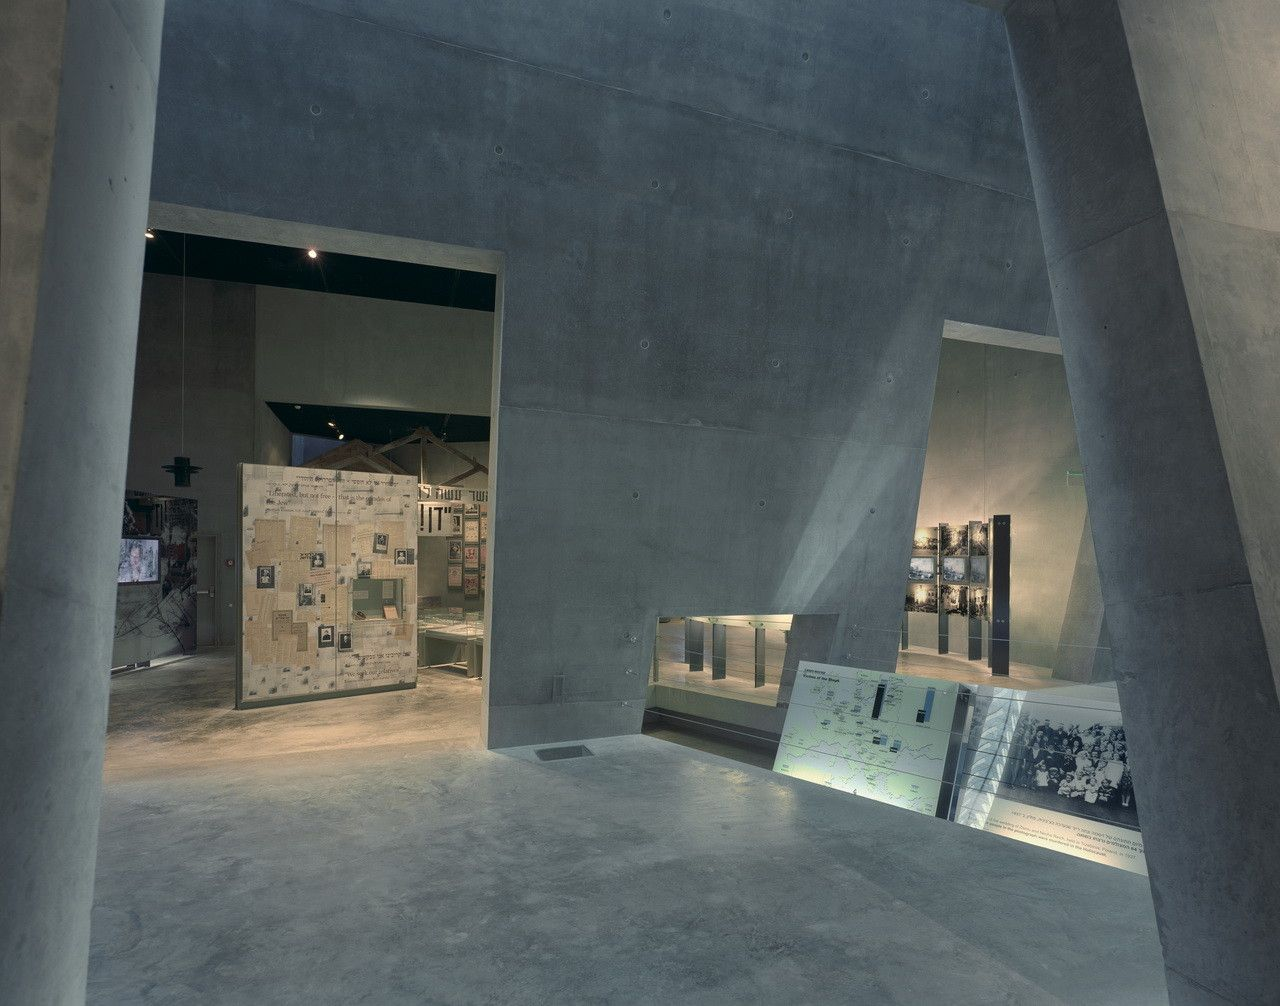 Gallery of Flashback: Yad Vashem Holocaust Museum / Safdie Architects - 10